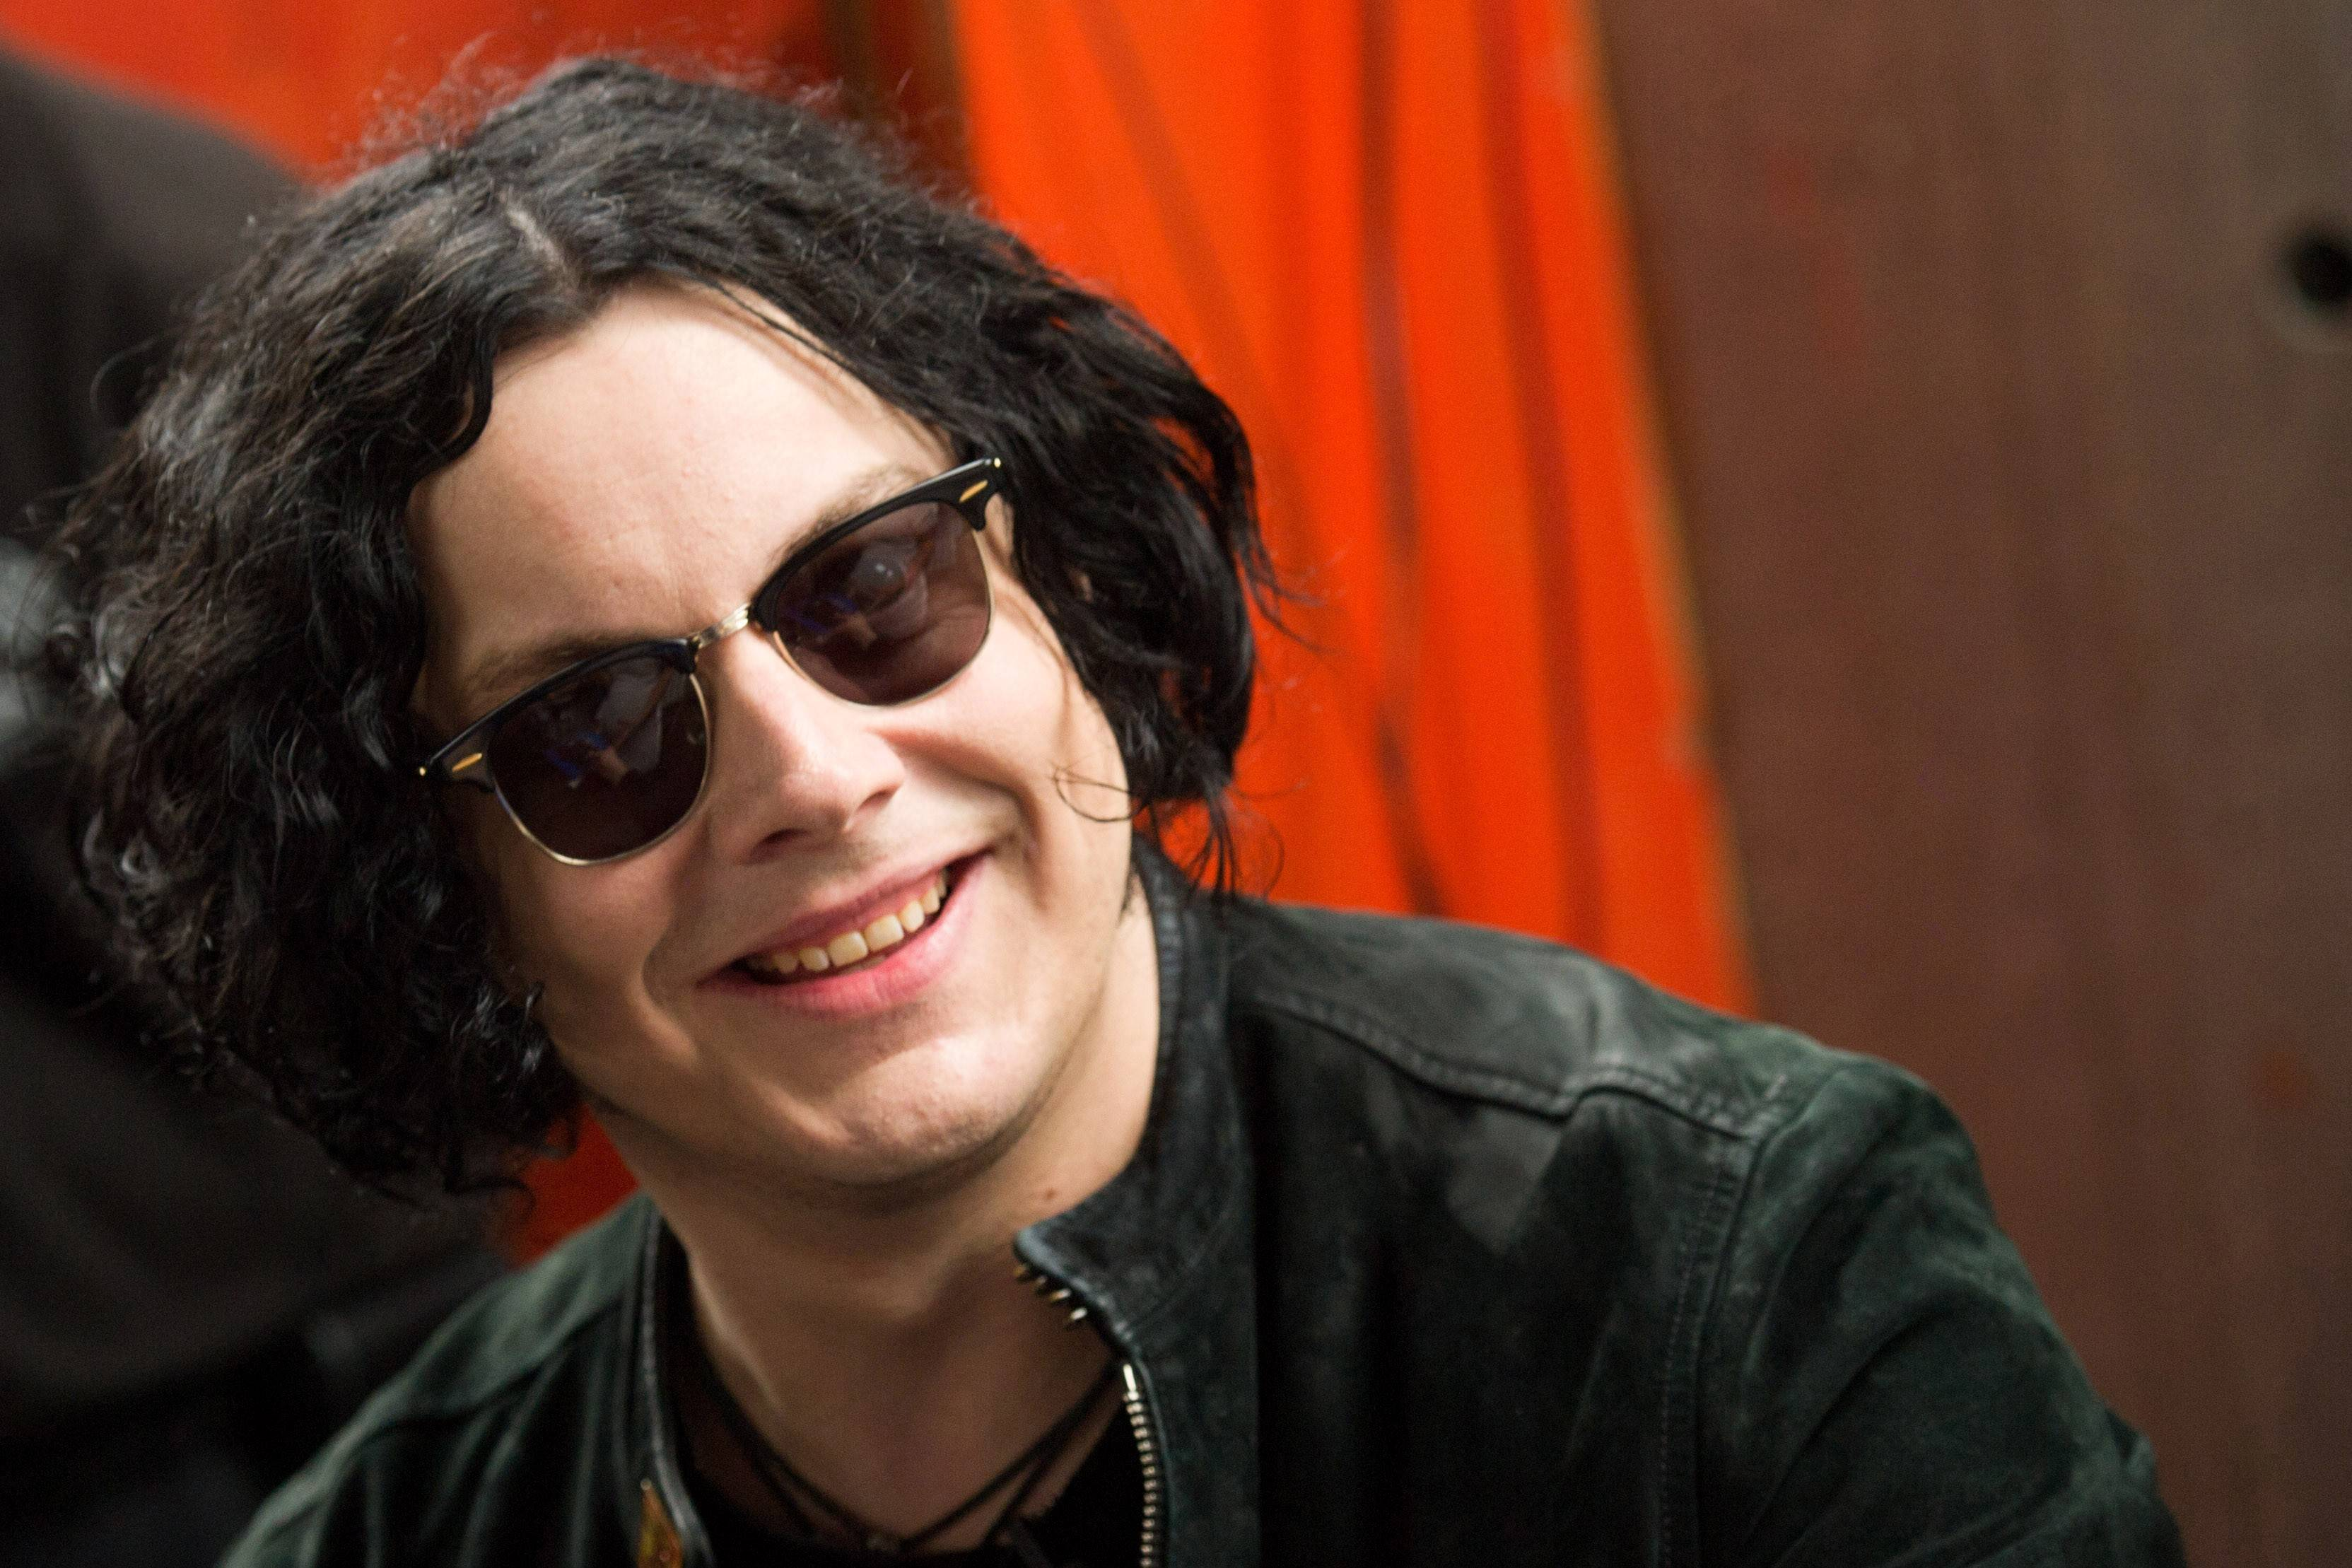 Jack White has issued a long apology to The Black Keys, his former bandmate Meg White and a number of others over comments he made in a recent Rolling Stone interview.